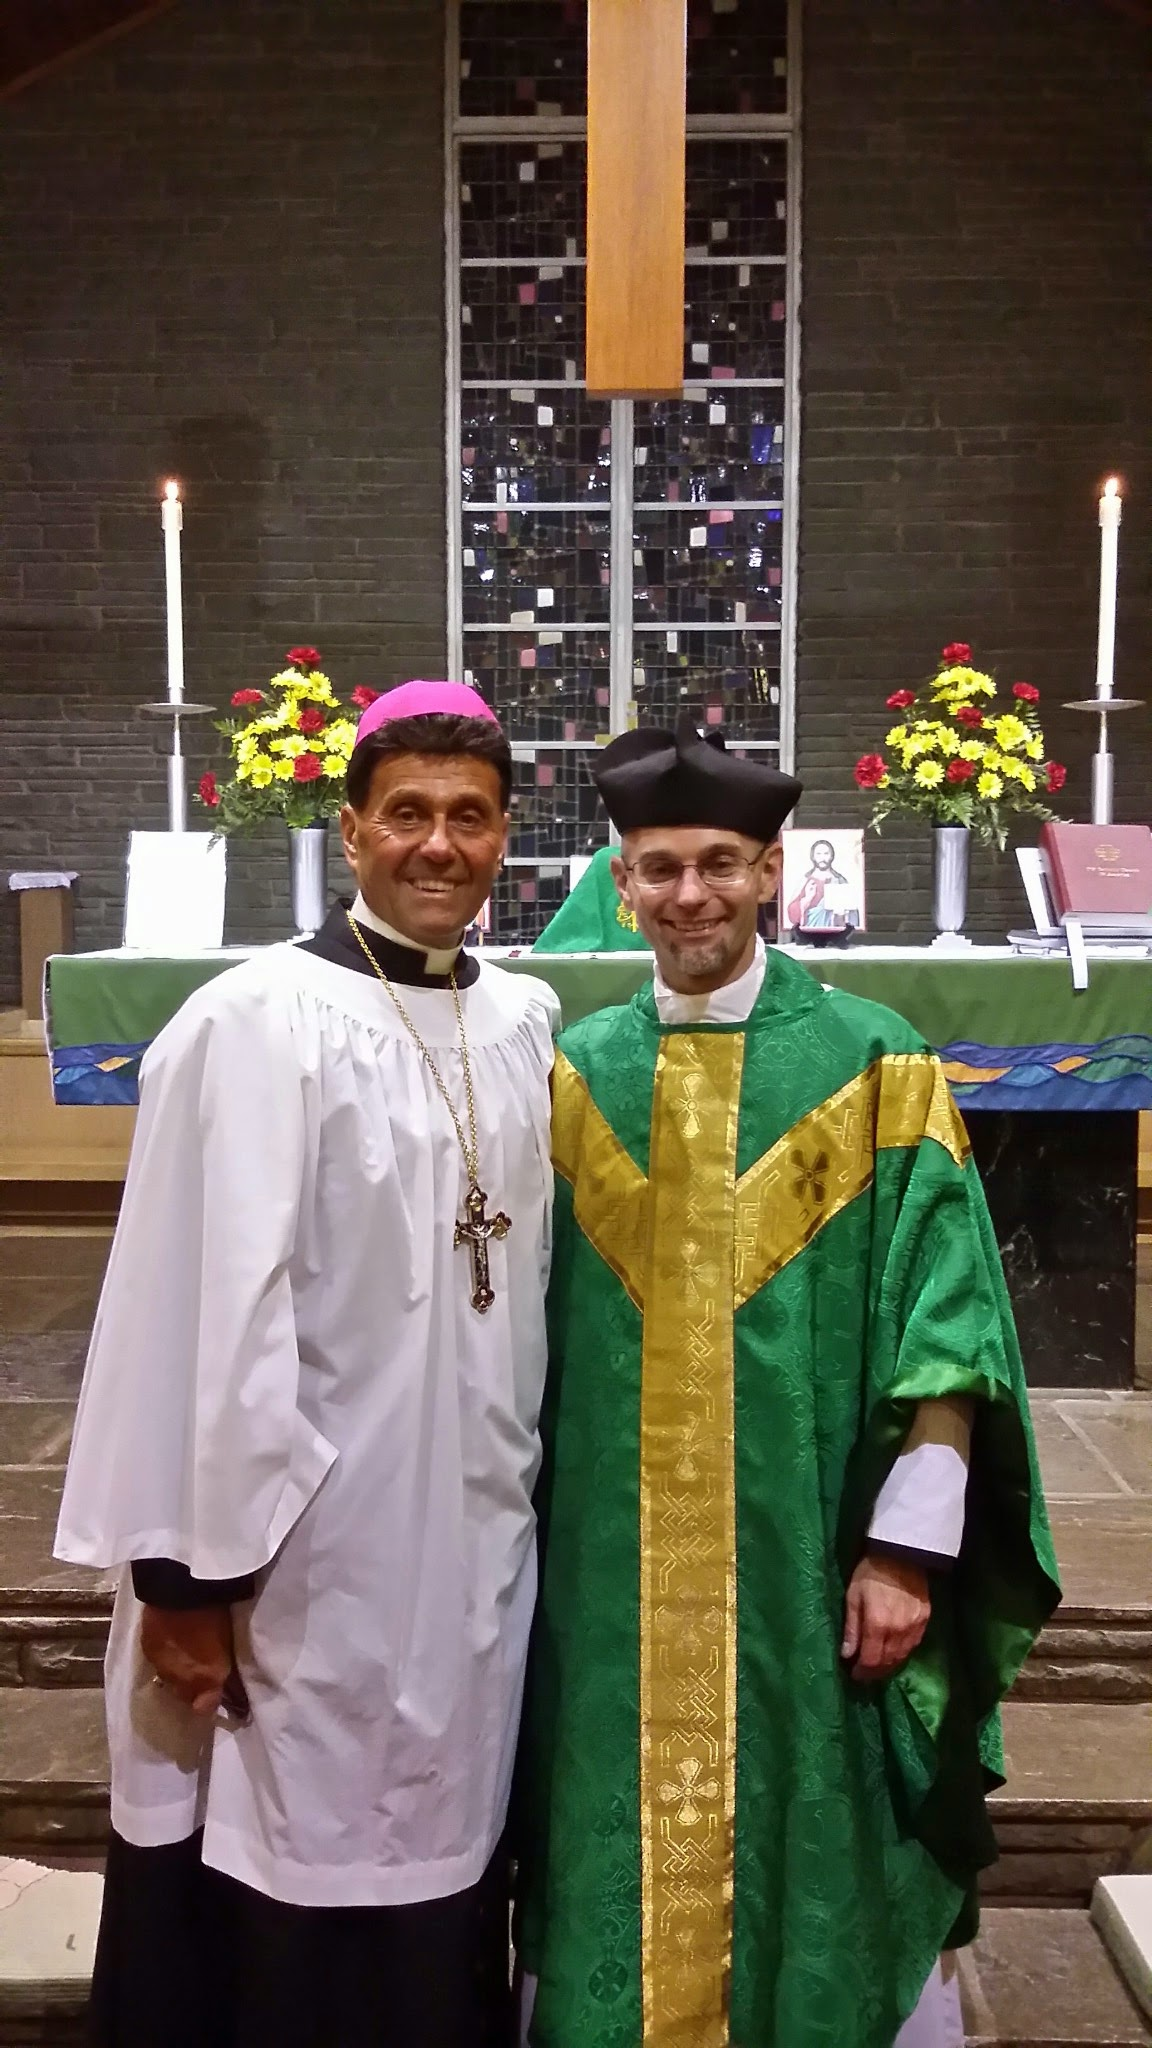 Bishop Victor and Father Joseph